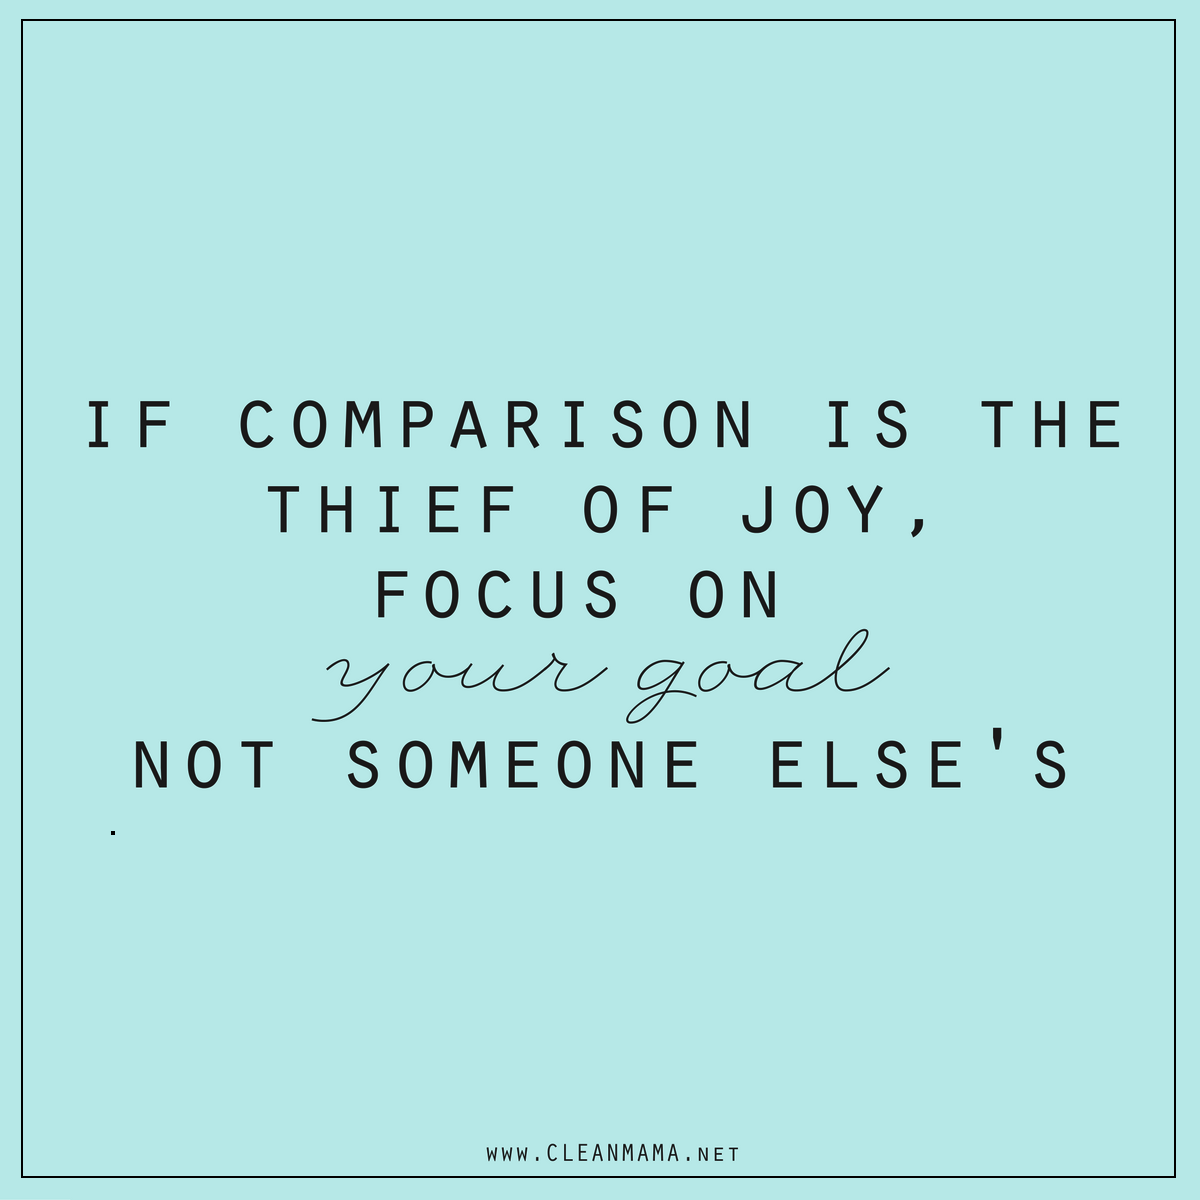 if-comparison-is-the-thief-of-joy-focus-on-your-goal-not-someone-elses-clean-mama